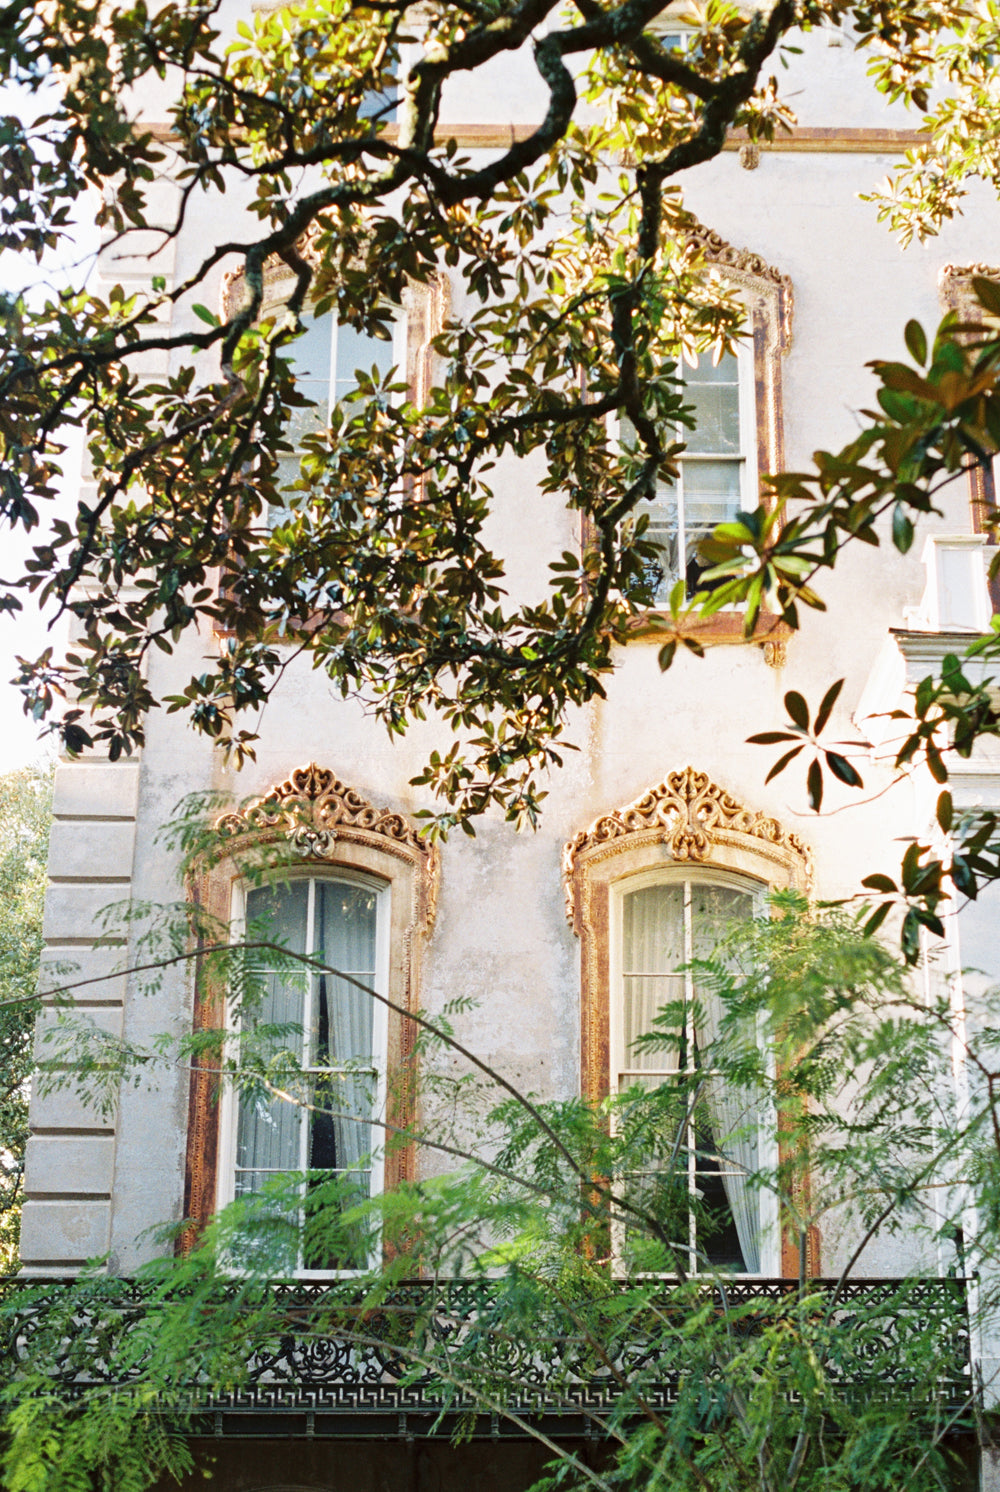 Windows of the Noble Hardee Mansion